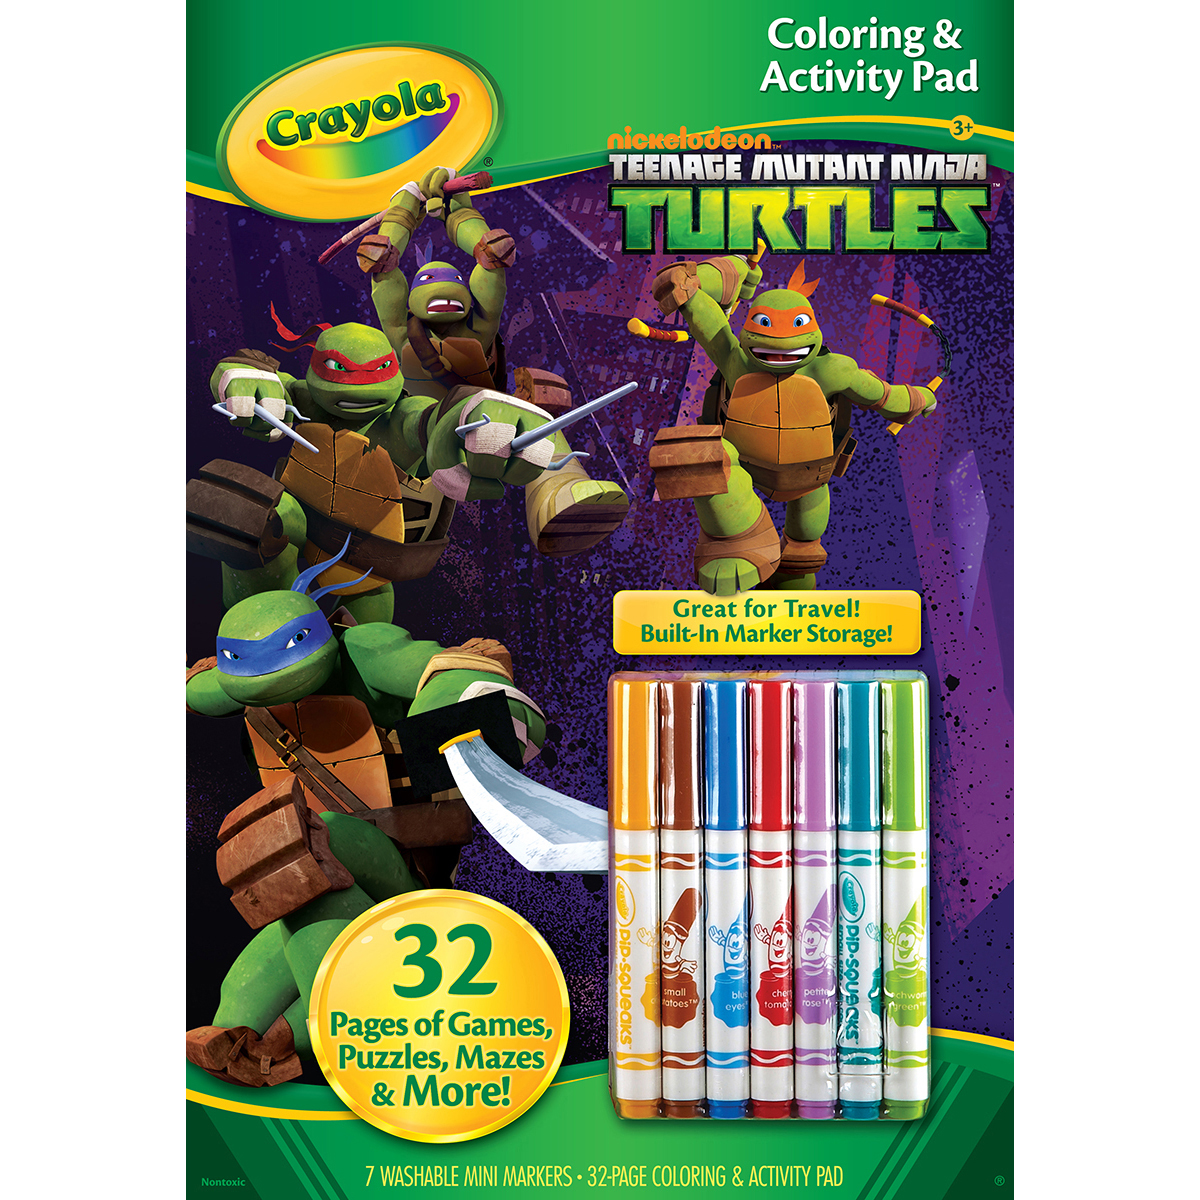 Crayola Coloring & Activity Pad W/Markers-Teenage Mutant Ninja Turtles